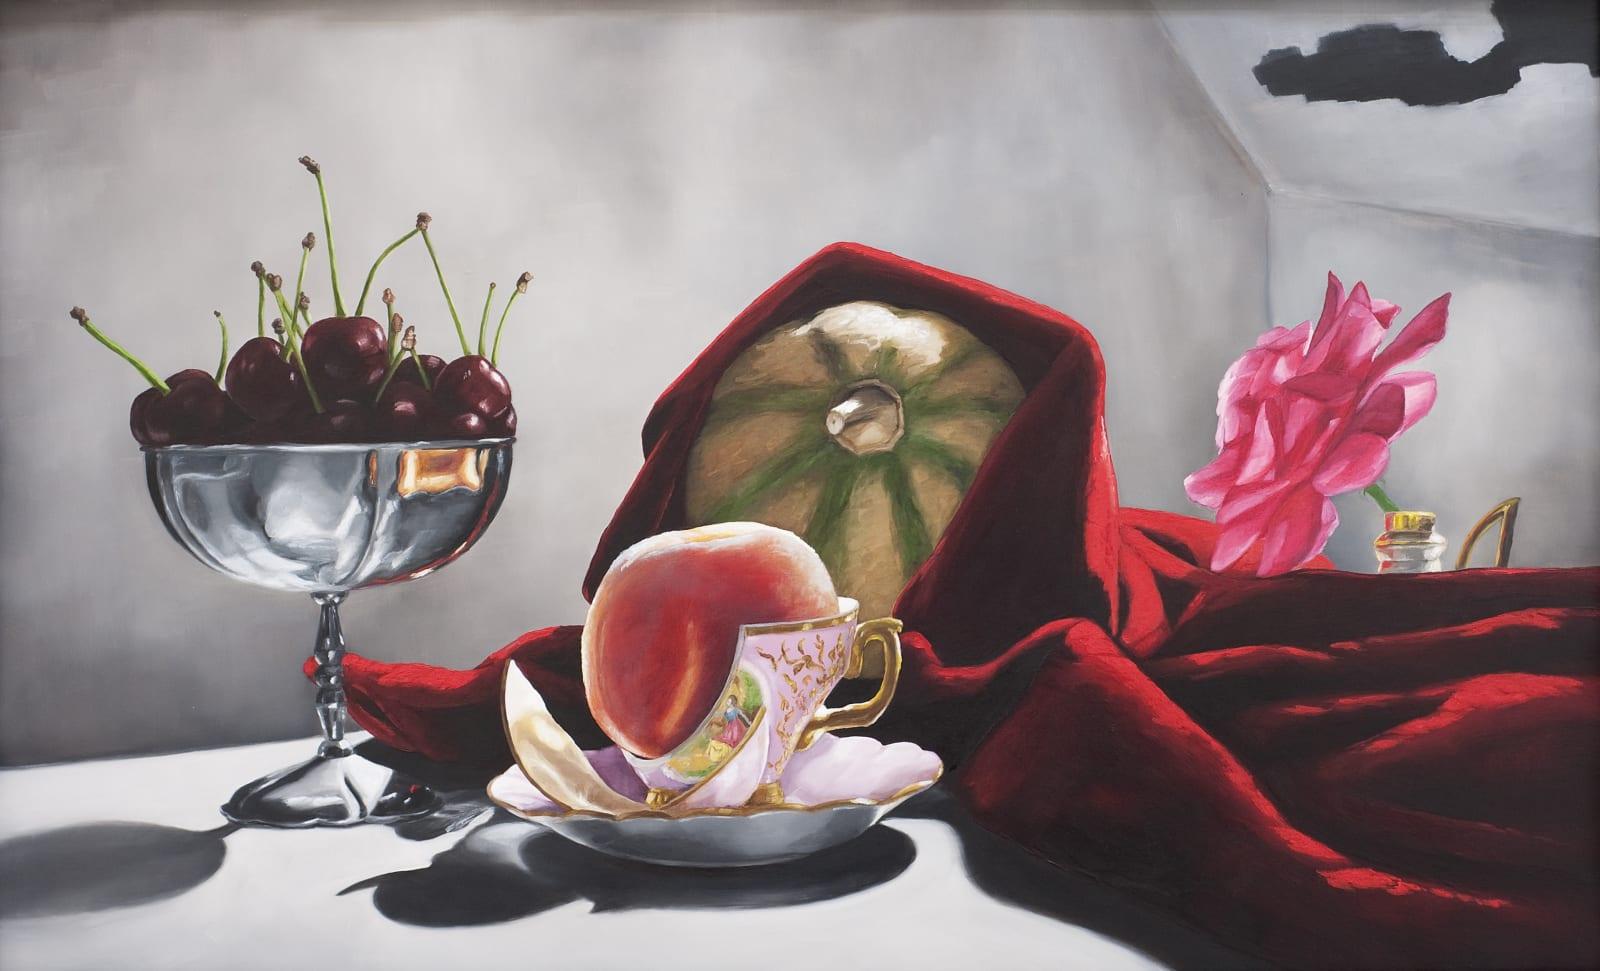 Royal Tea, 2010/20, 43 x 67cm, Oil on canvas